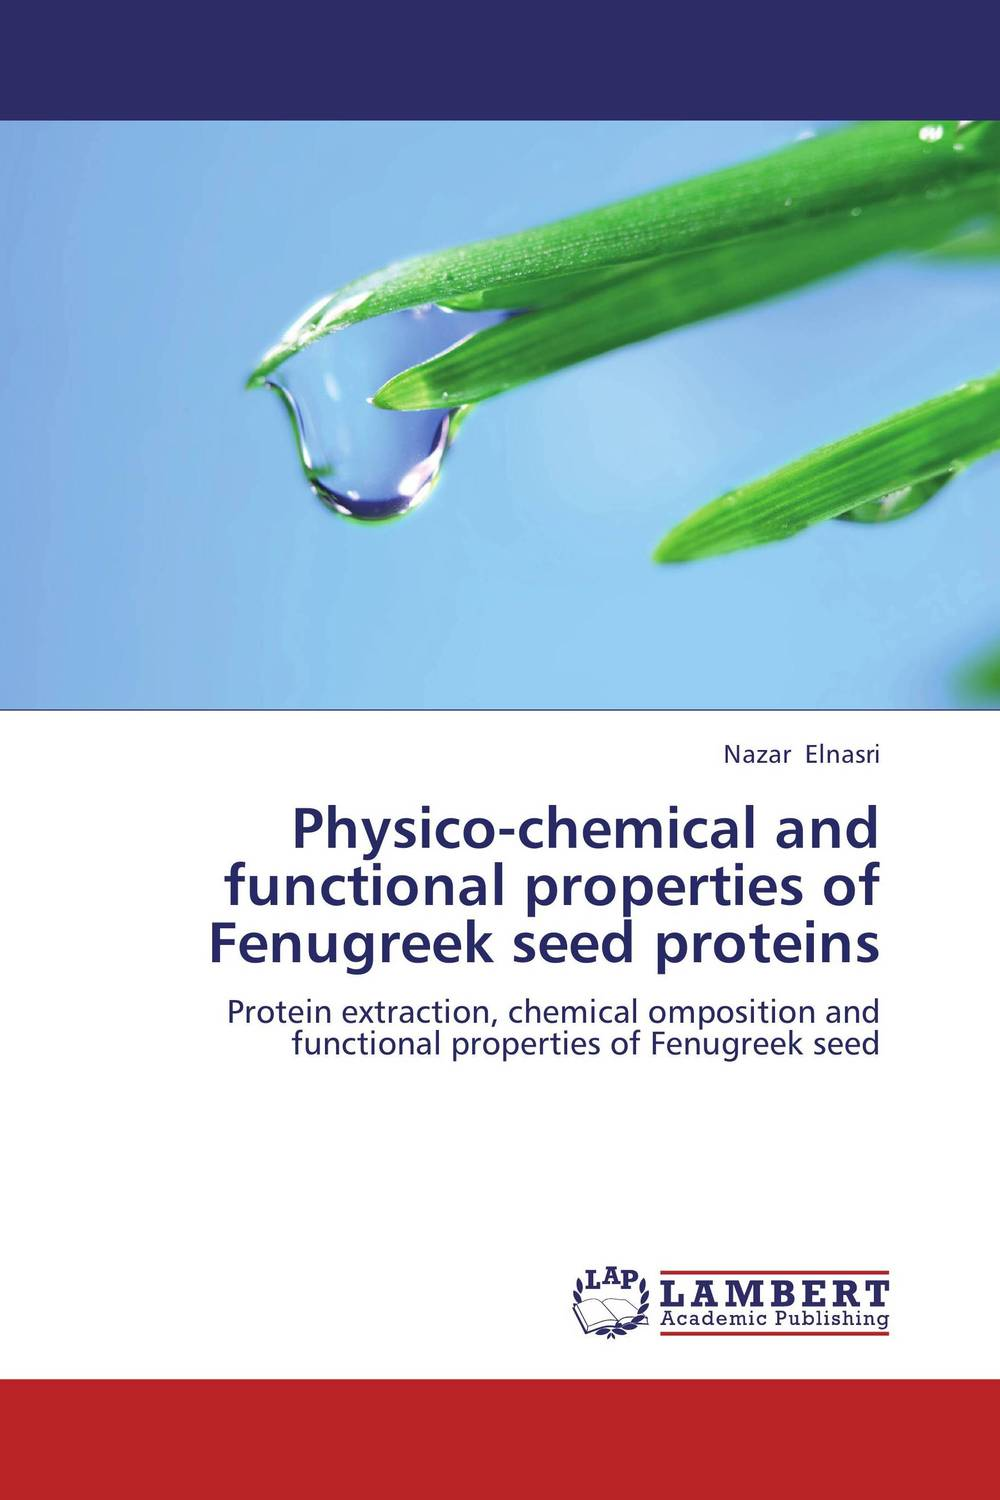 Physico-chemical and functional properties of Fenugreek seed proteins diosgenin